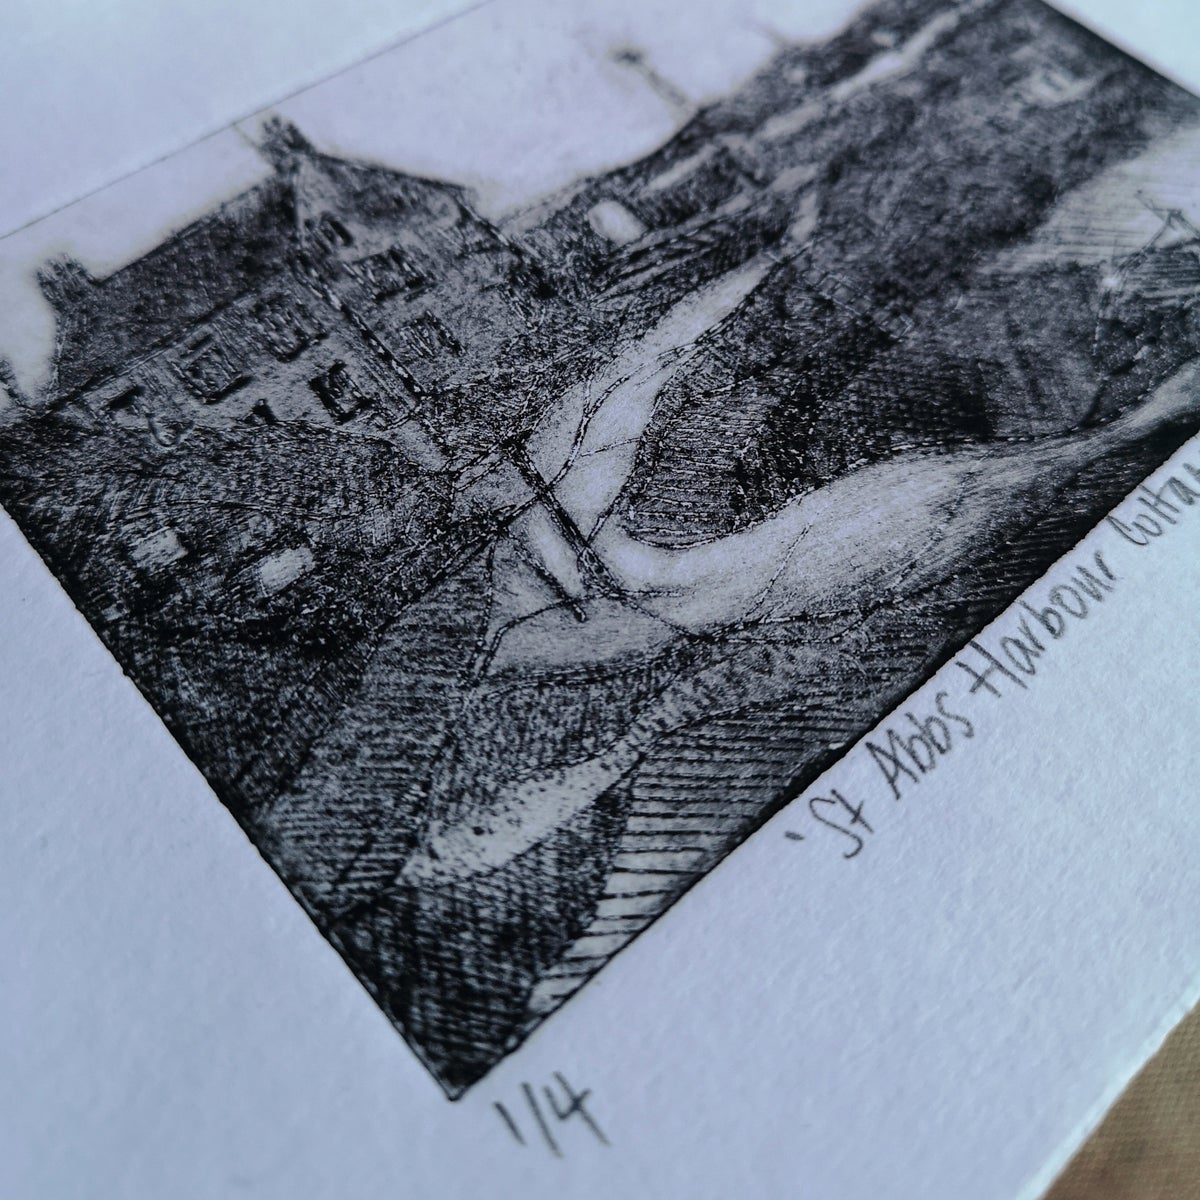 Image of St Abbs Harbour Cottage - Original Drypoint Print 1/4